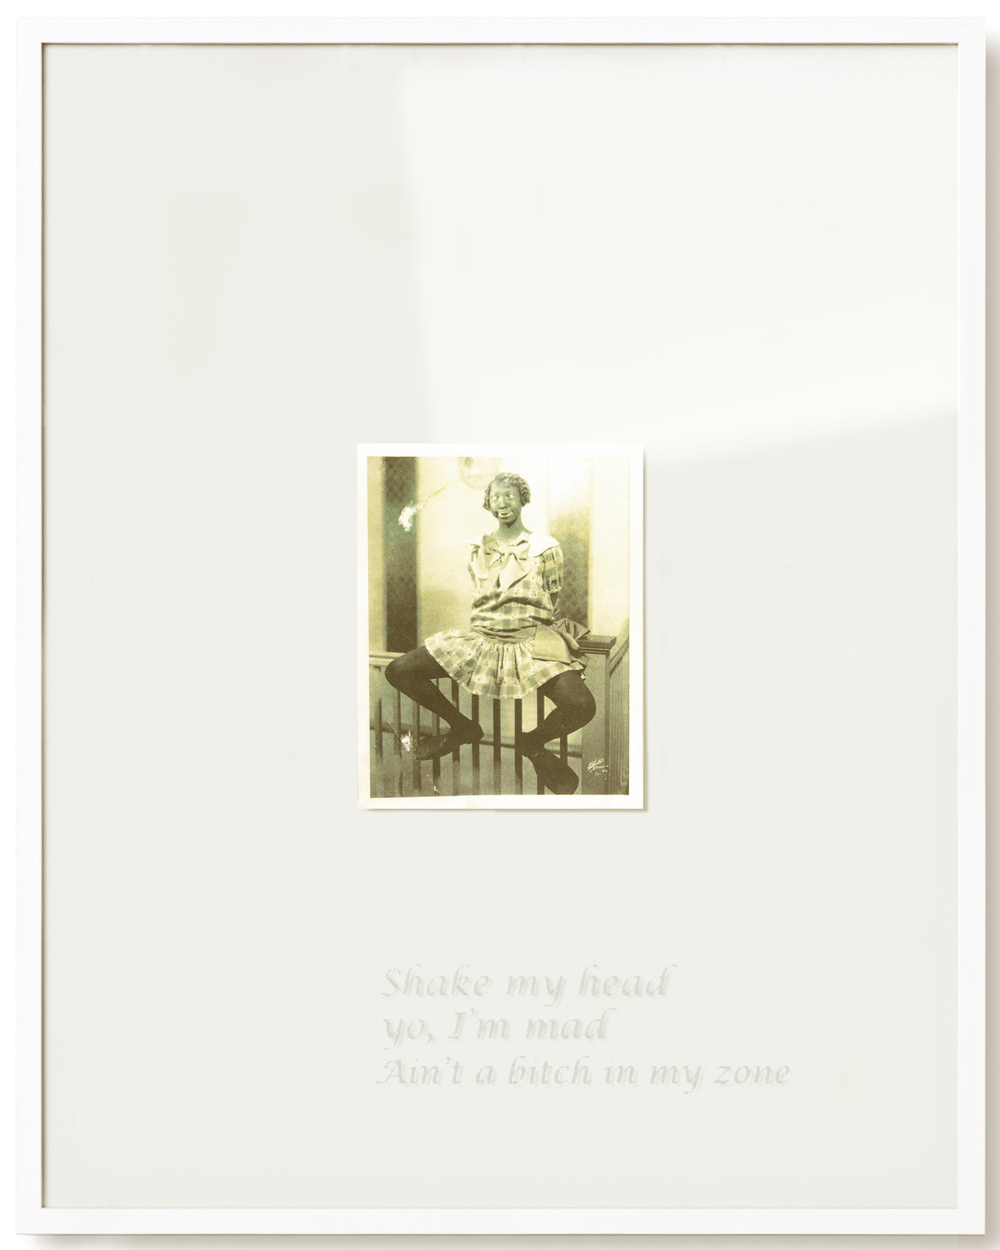 Yo, I'm Mad, 2015, 40,7 x 32,4 cm, found image, engraving on glass.jpg